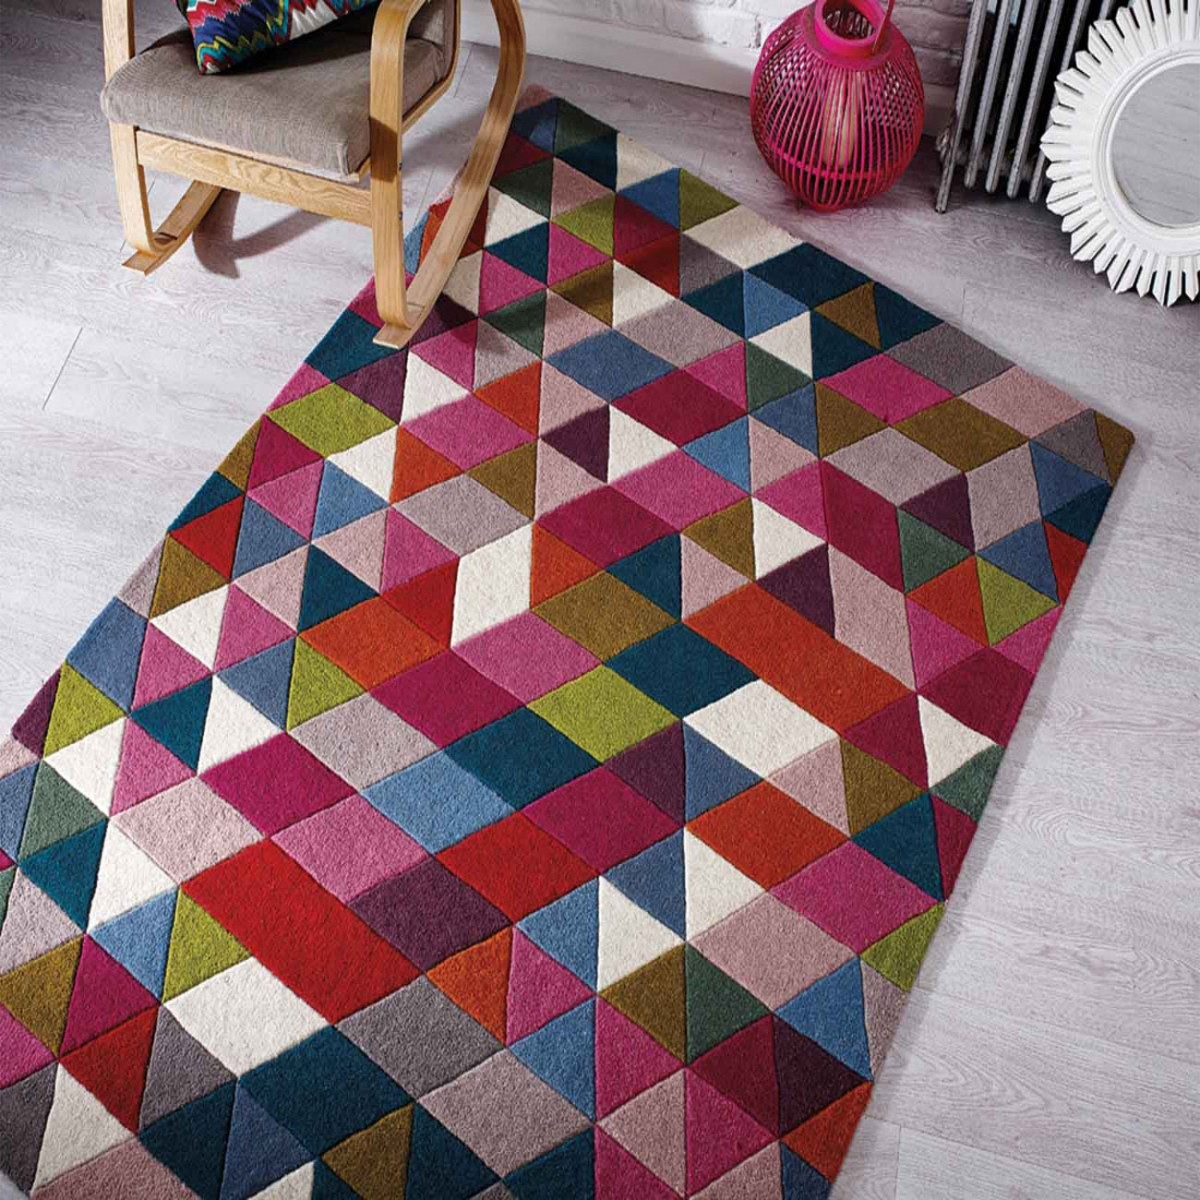 Pink Rugs Bright Rugs Pink Rugs For Sale Therugshopuk With Regard To Pink Pattern Rugs (Image 13 of 15)